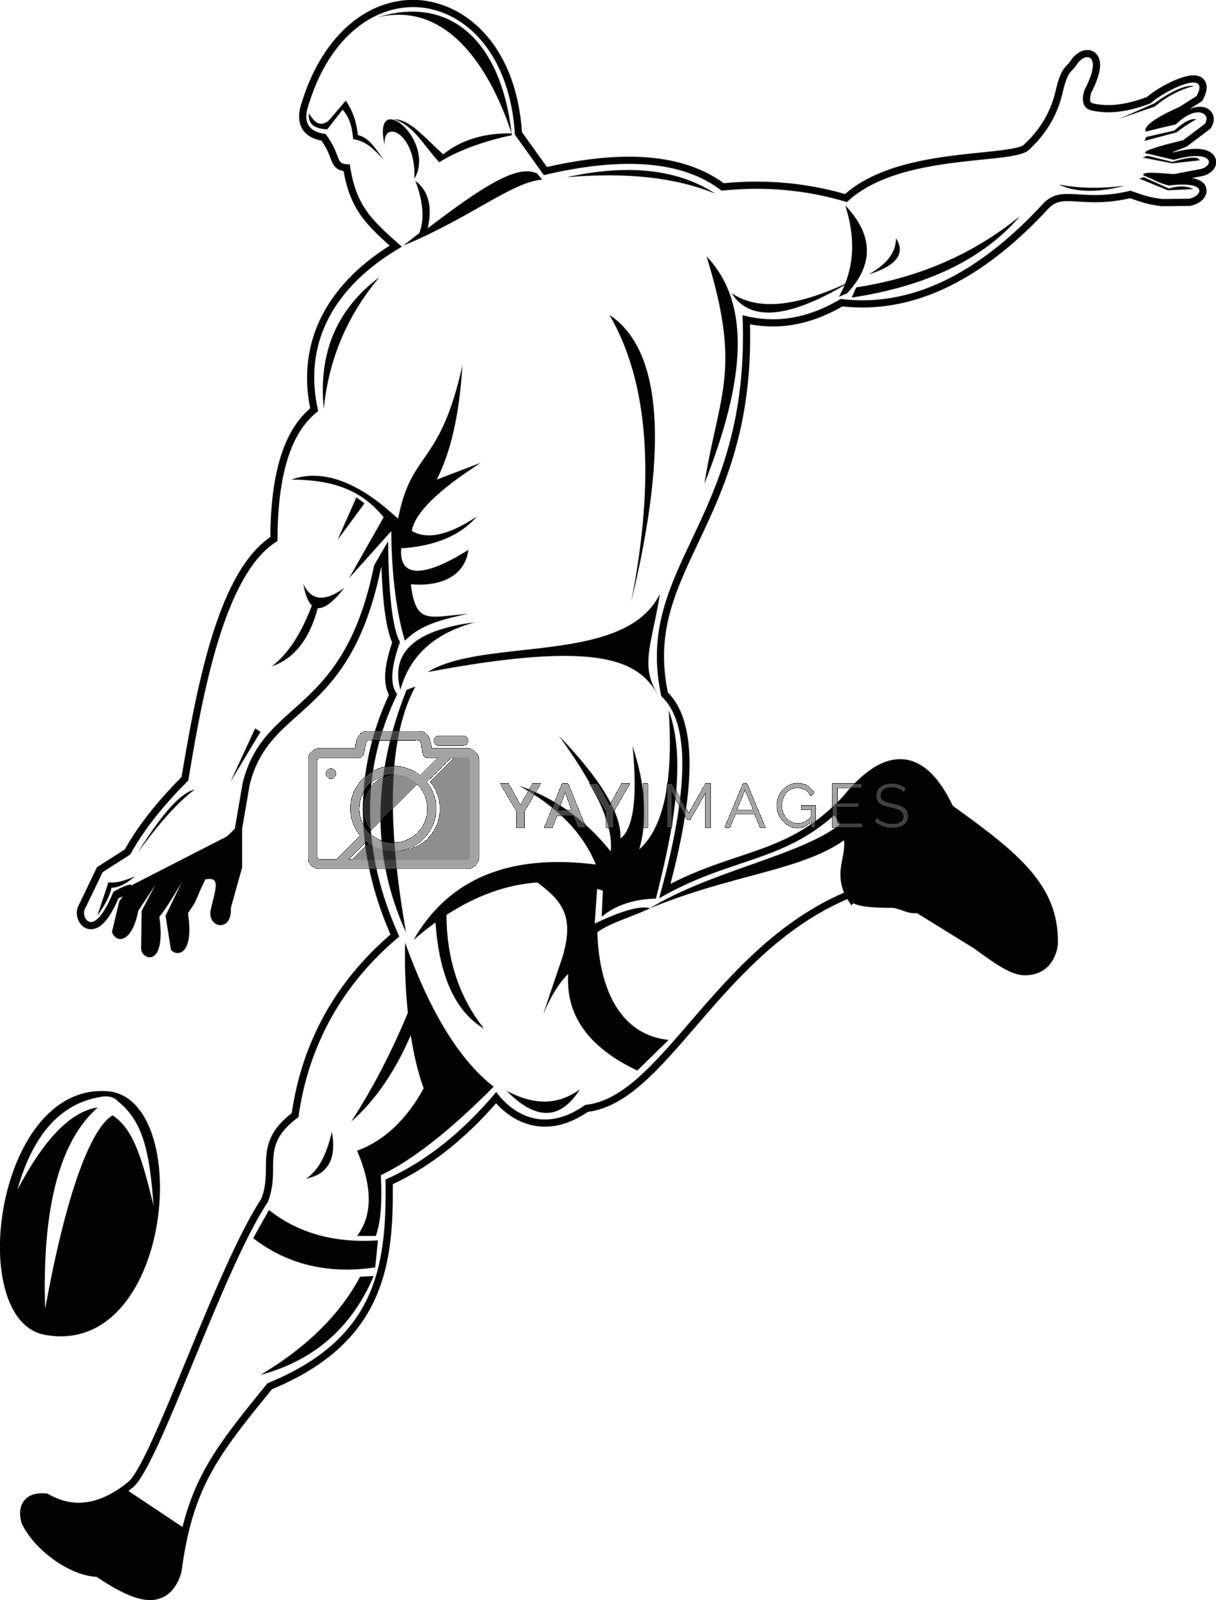 Retro woodcut style illustration of a rugby player or kicker drop kicking the ball viewed from rear or side on isolated background done in black and white.